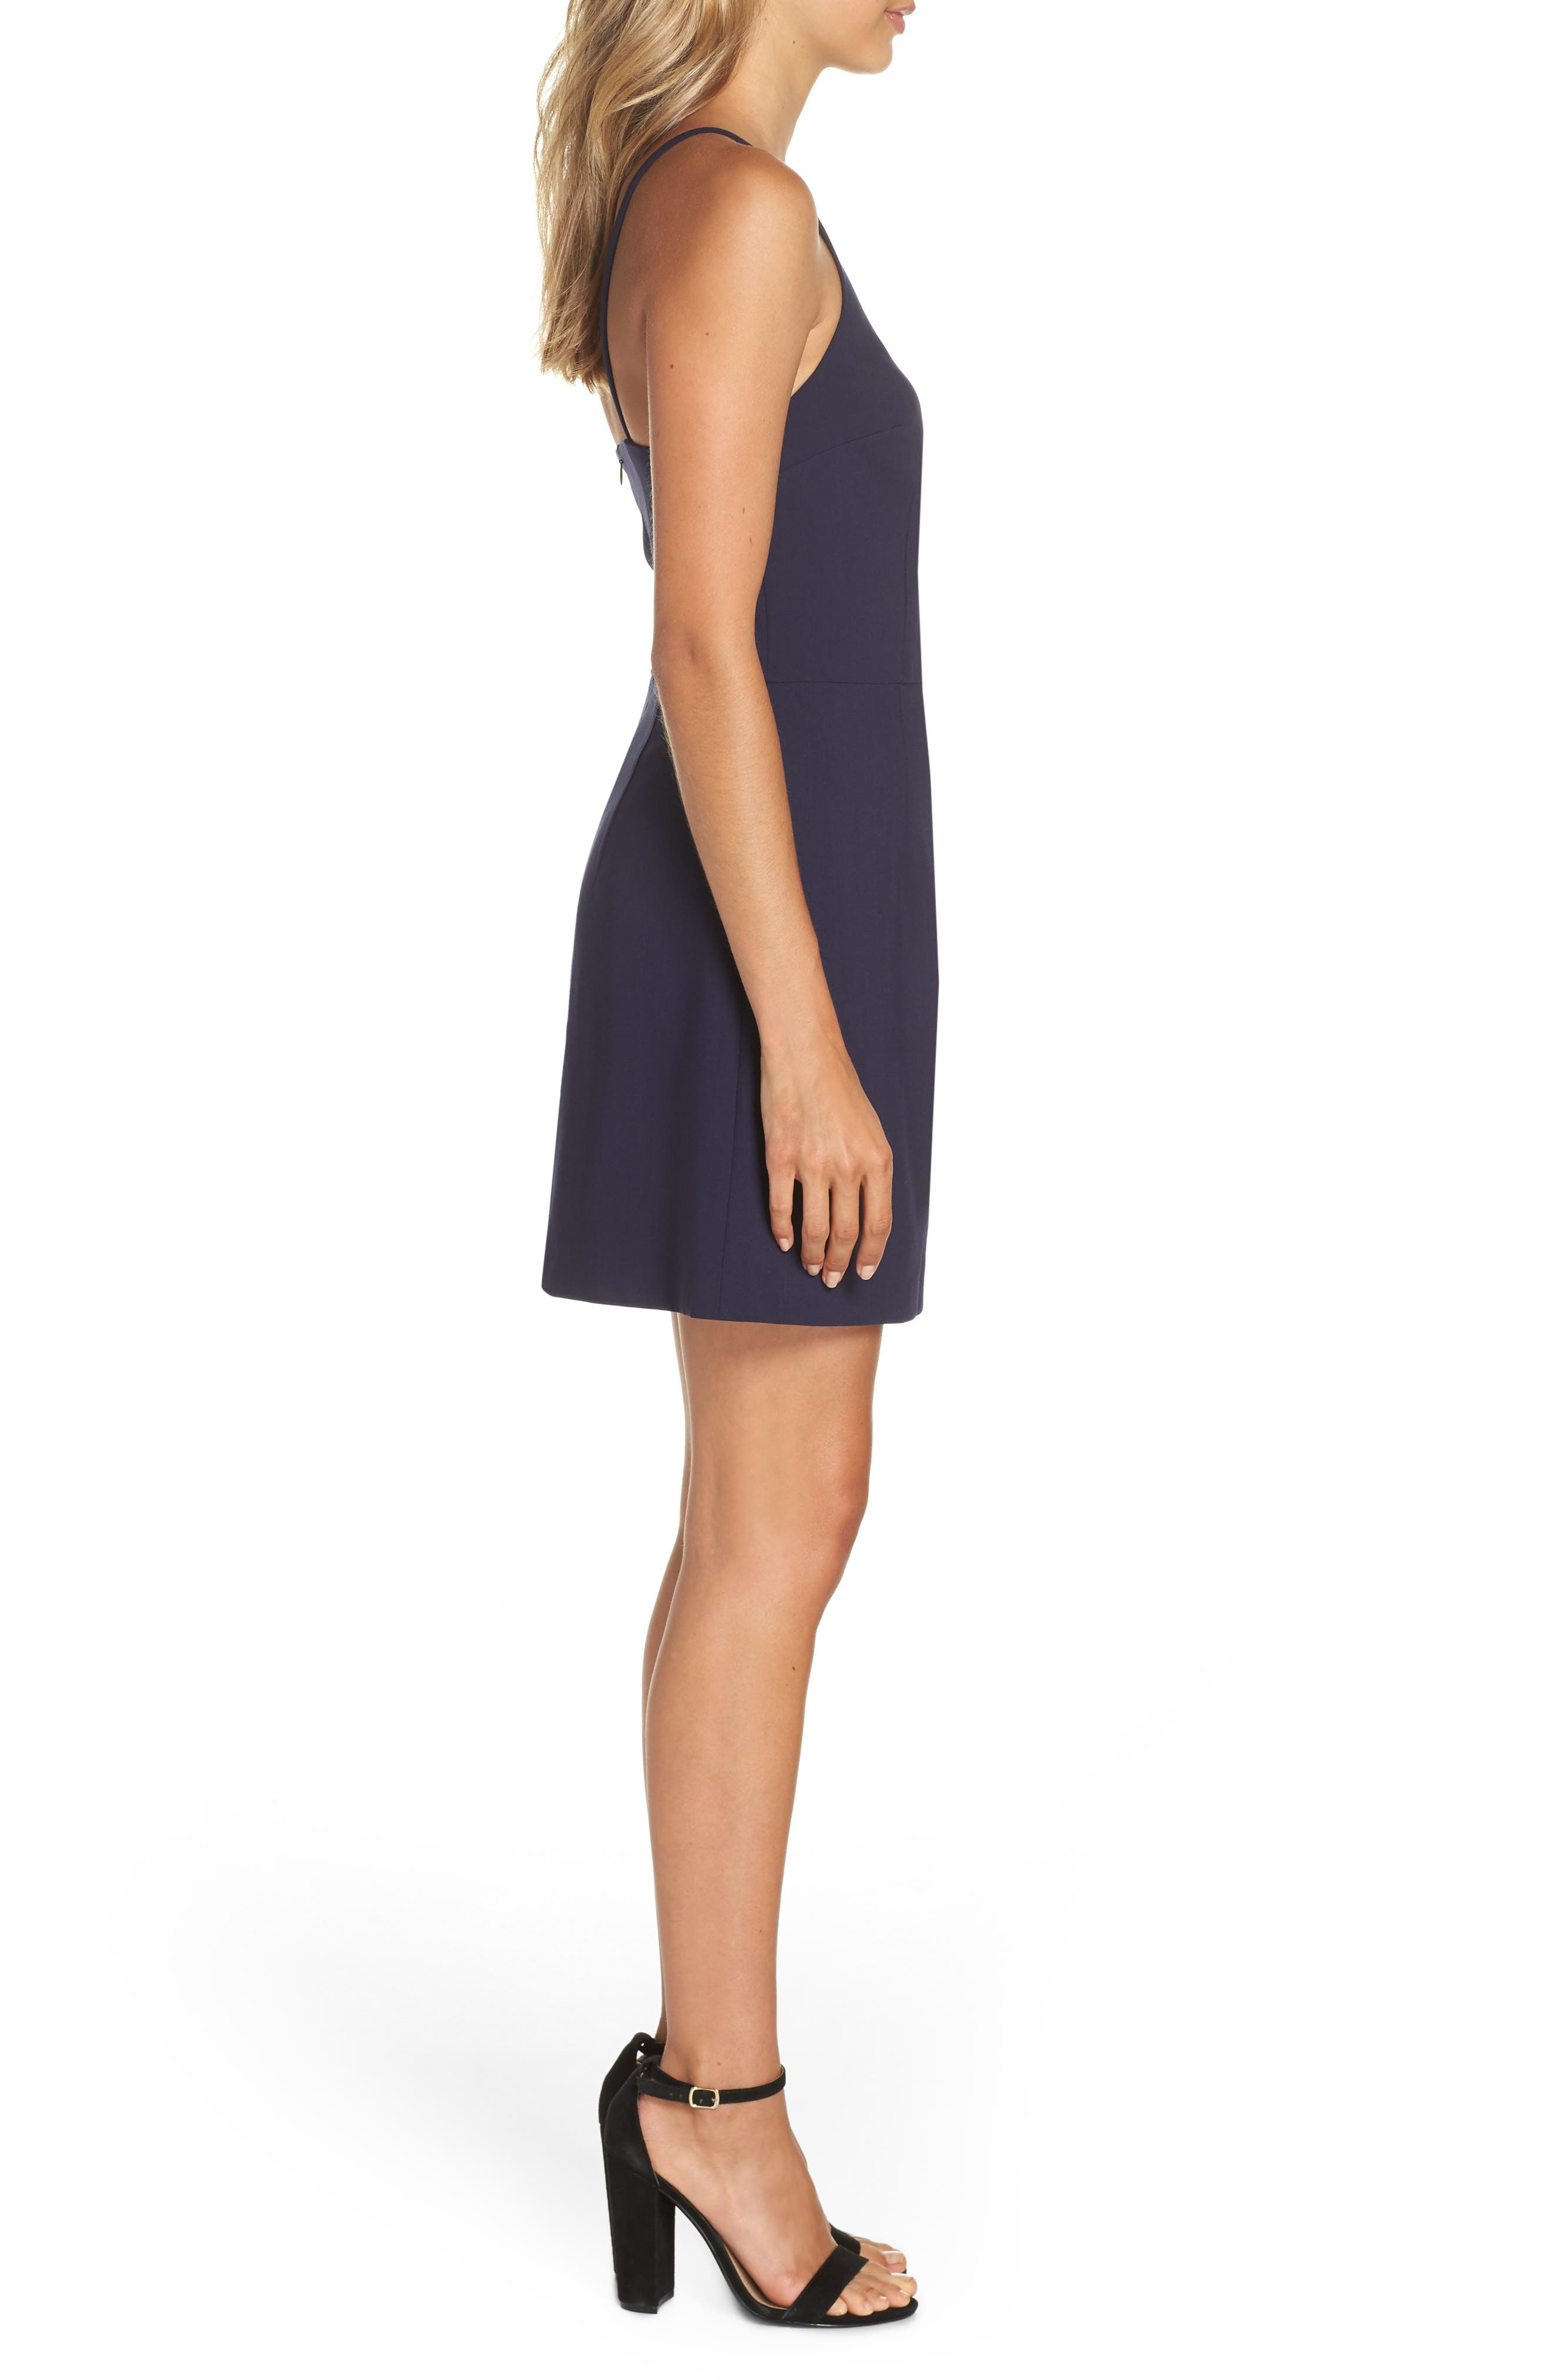 Whisper Light Sheath Dress,                             Alternate thumbnail 3, color,                             DUCHESS BLUE